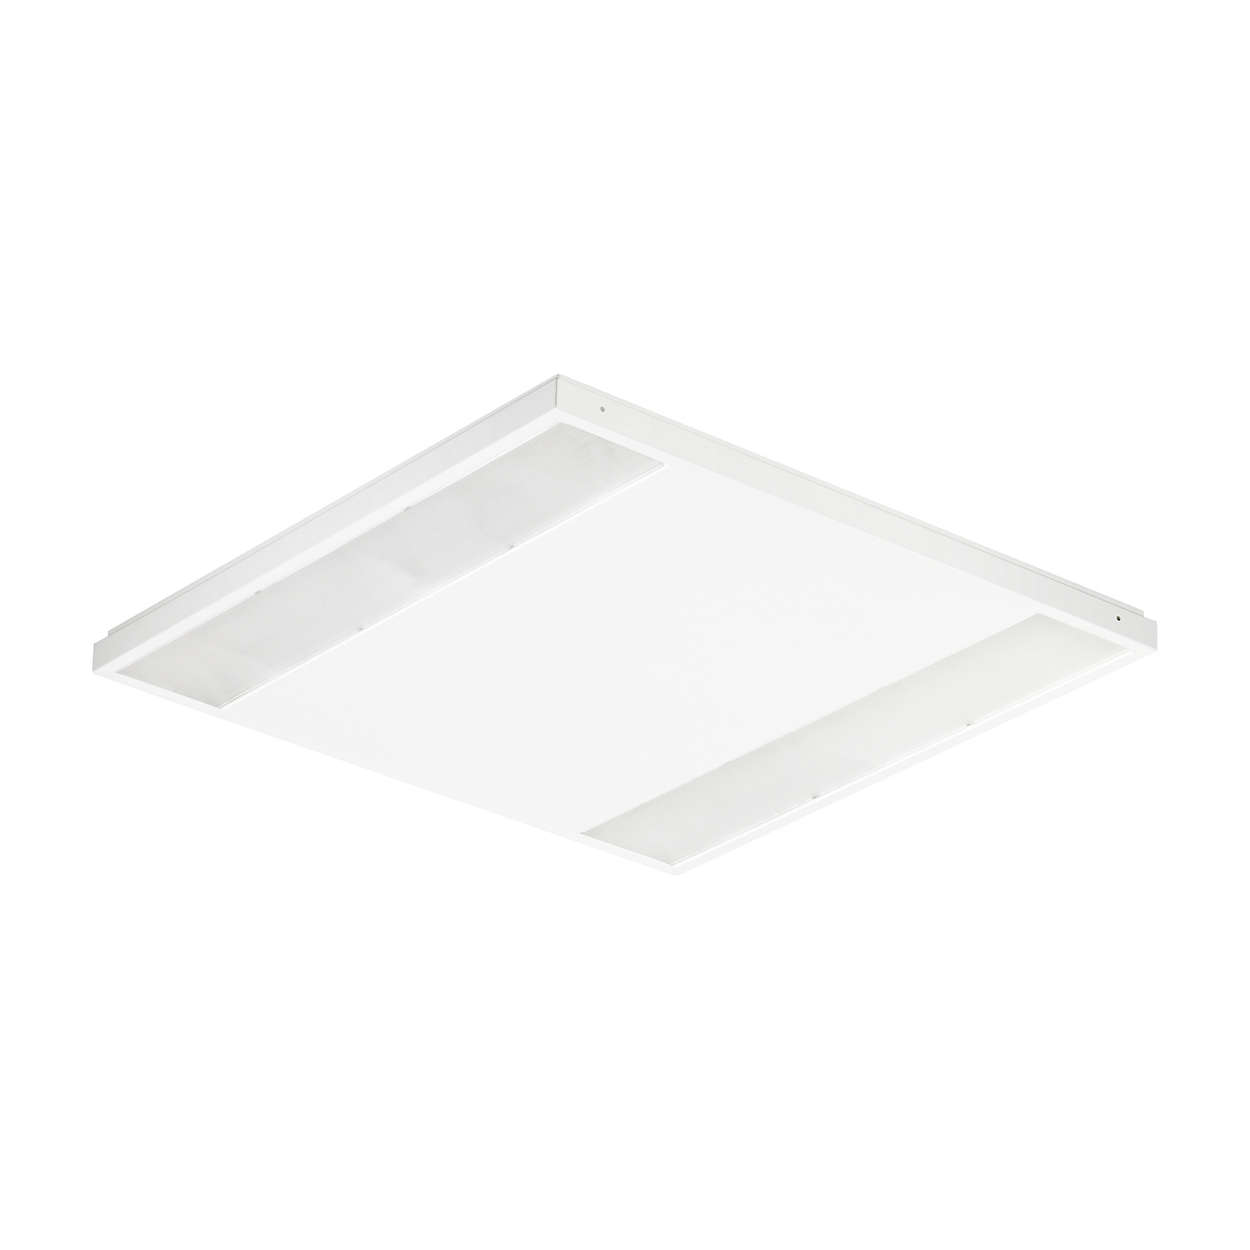 CoreLine Surface-mounted – the clear choice for LED